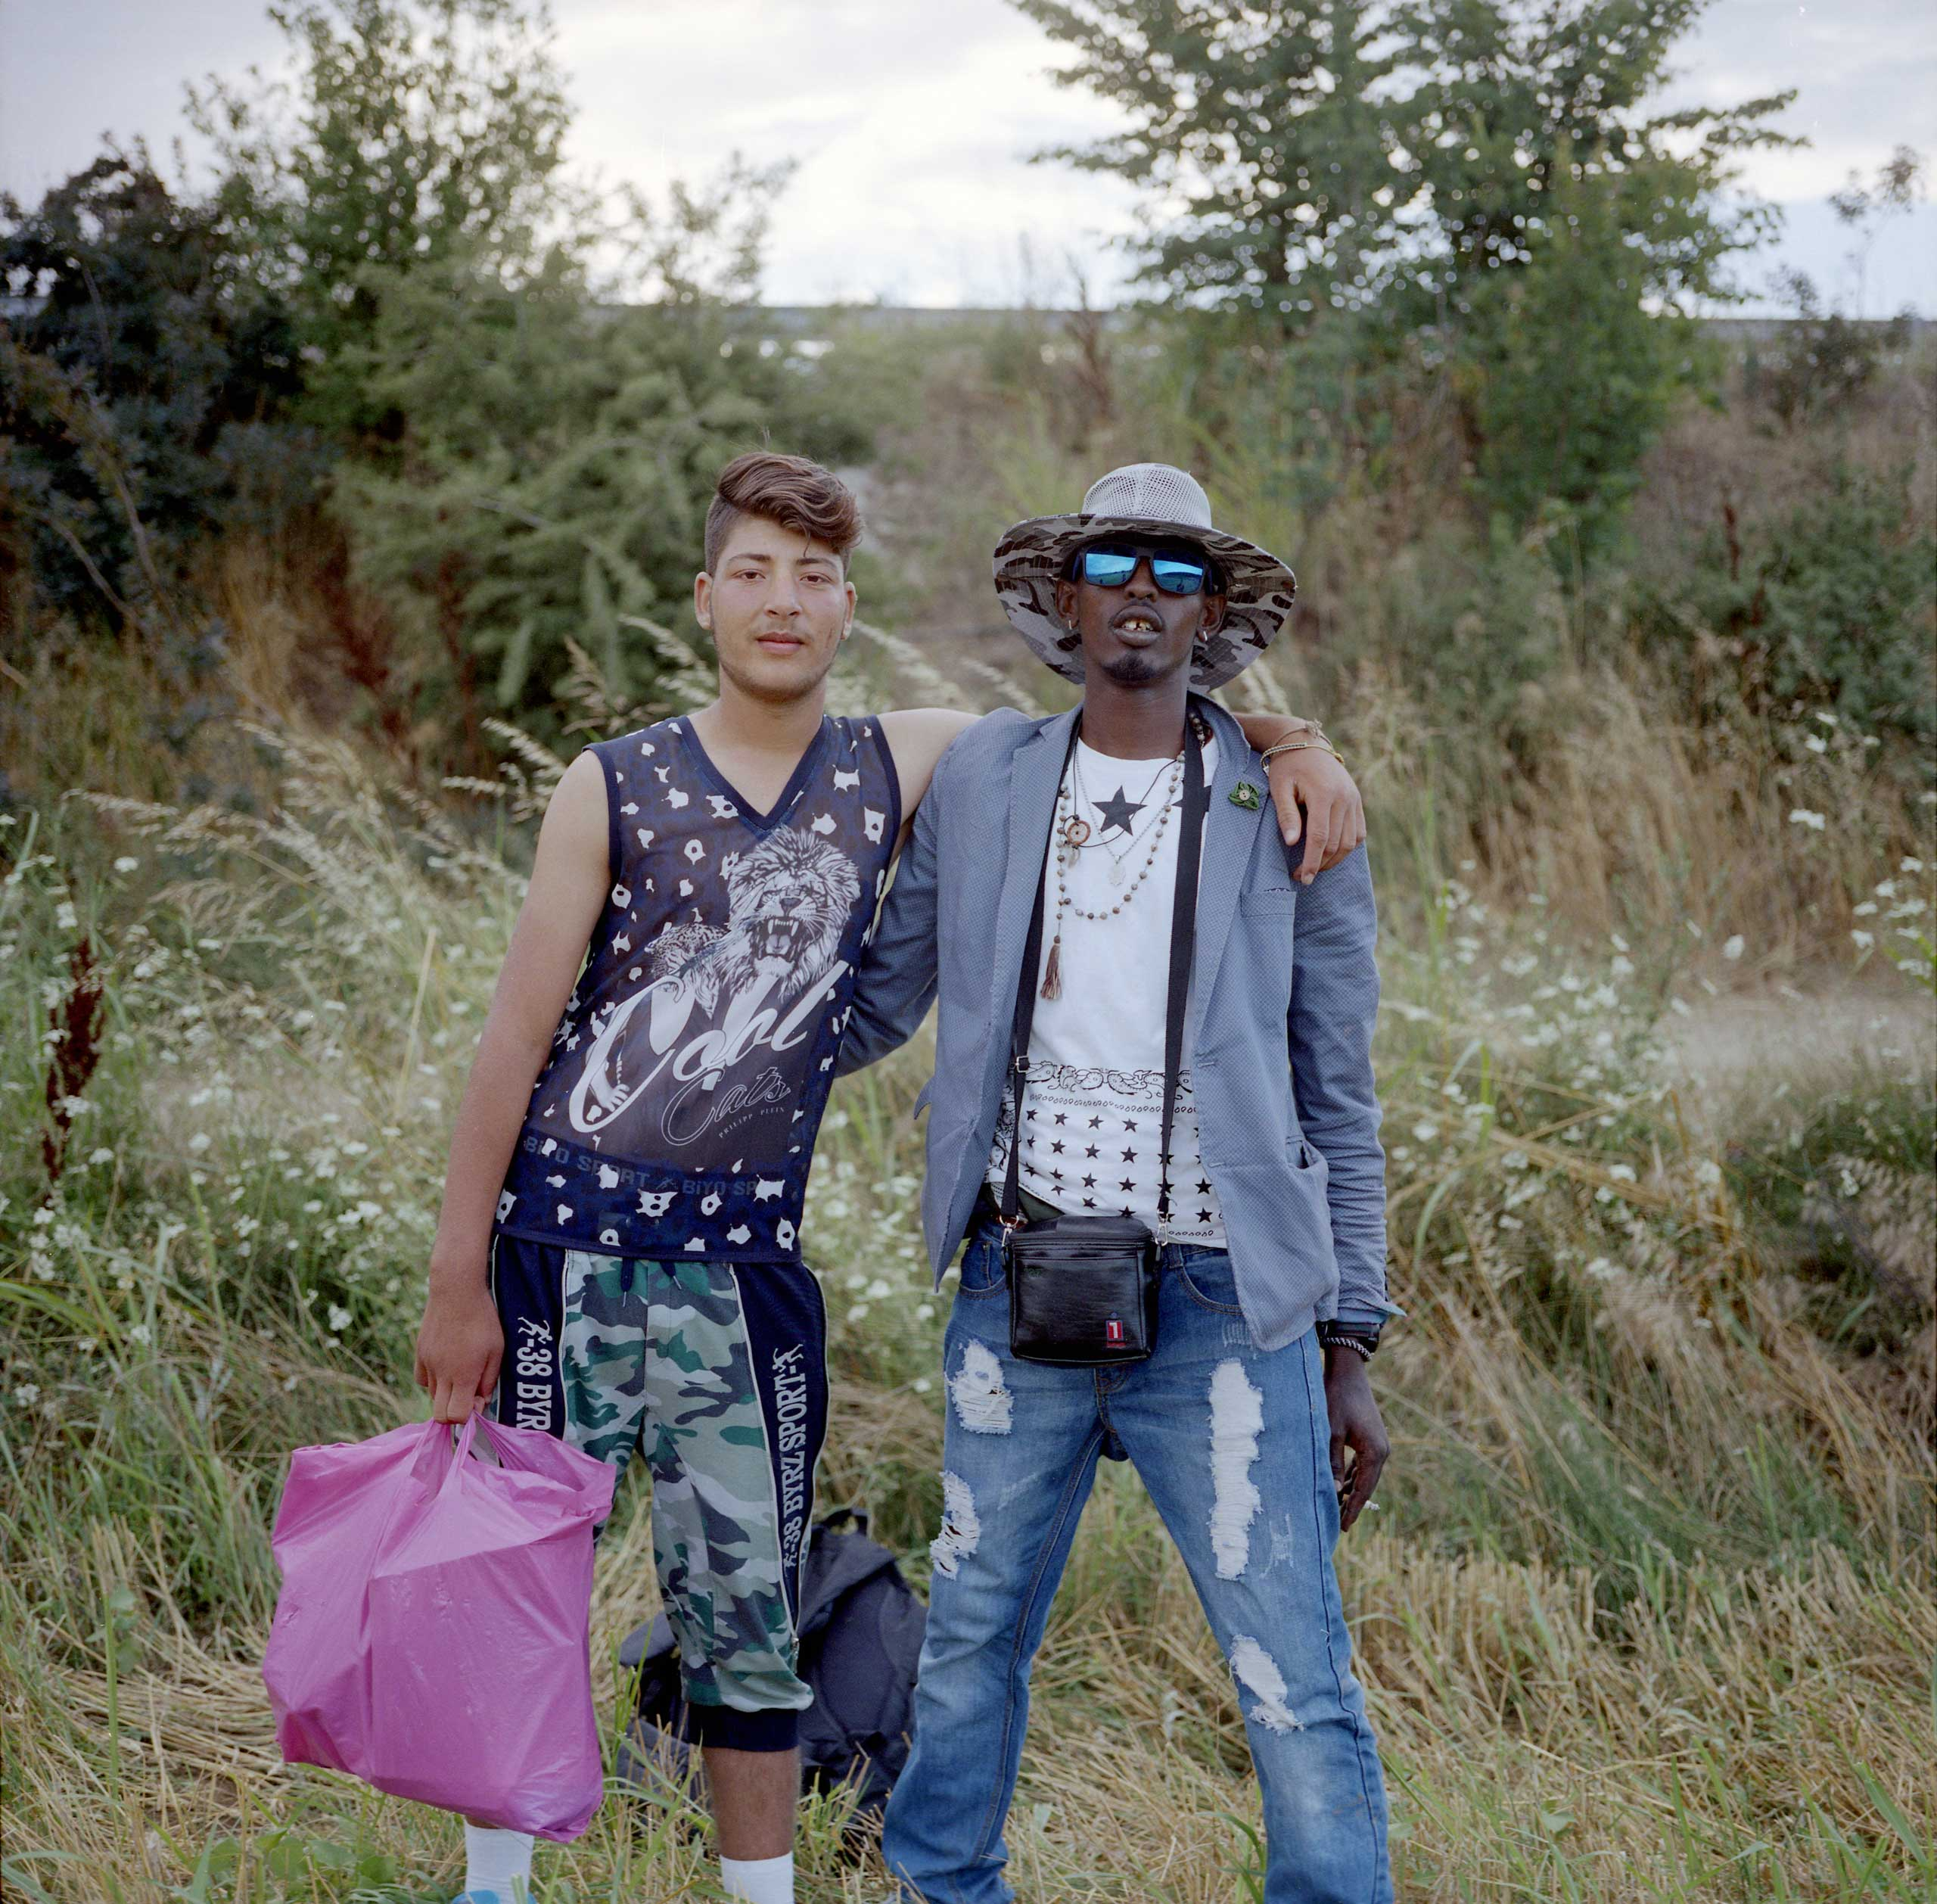 Afghan and Somali refugees met in a group of people trying to cross illegally by walking through the fields and forests from Northern Greek town of Idomeni into Macedonia. Greece, June, 2015.